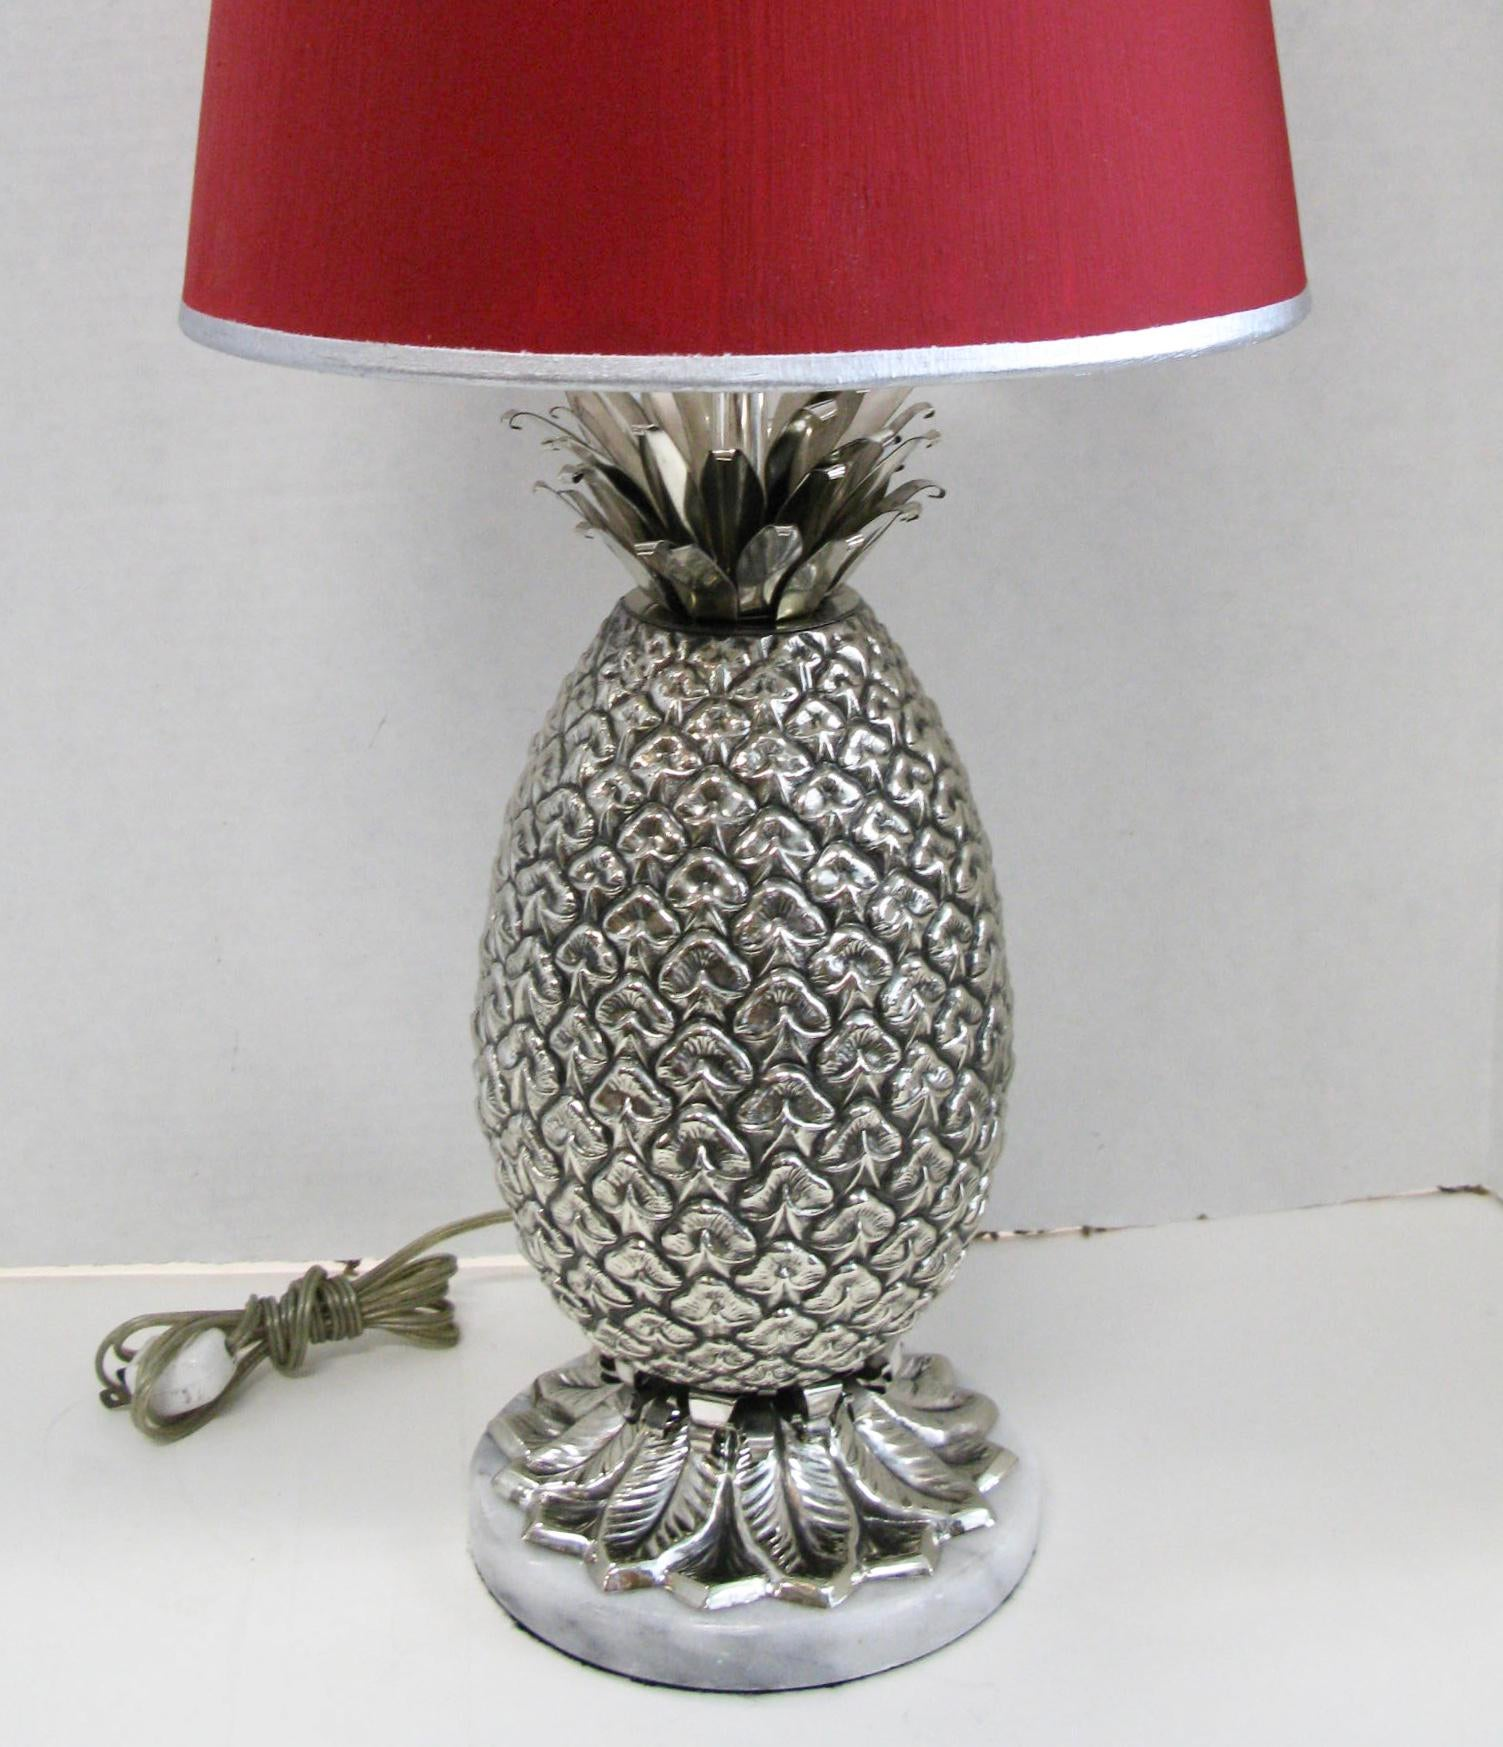 Hollywood Regency Italian Silver Plated Pineapple Table Lamp U0026 Original Red  Shade For Sale   Image